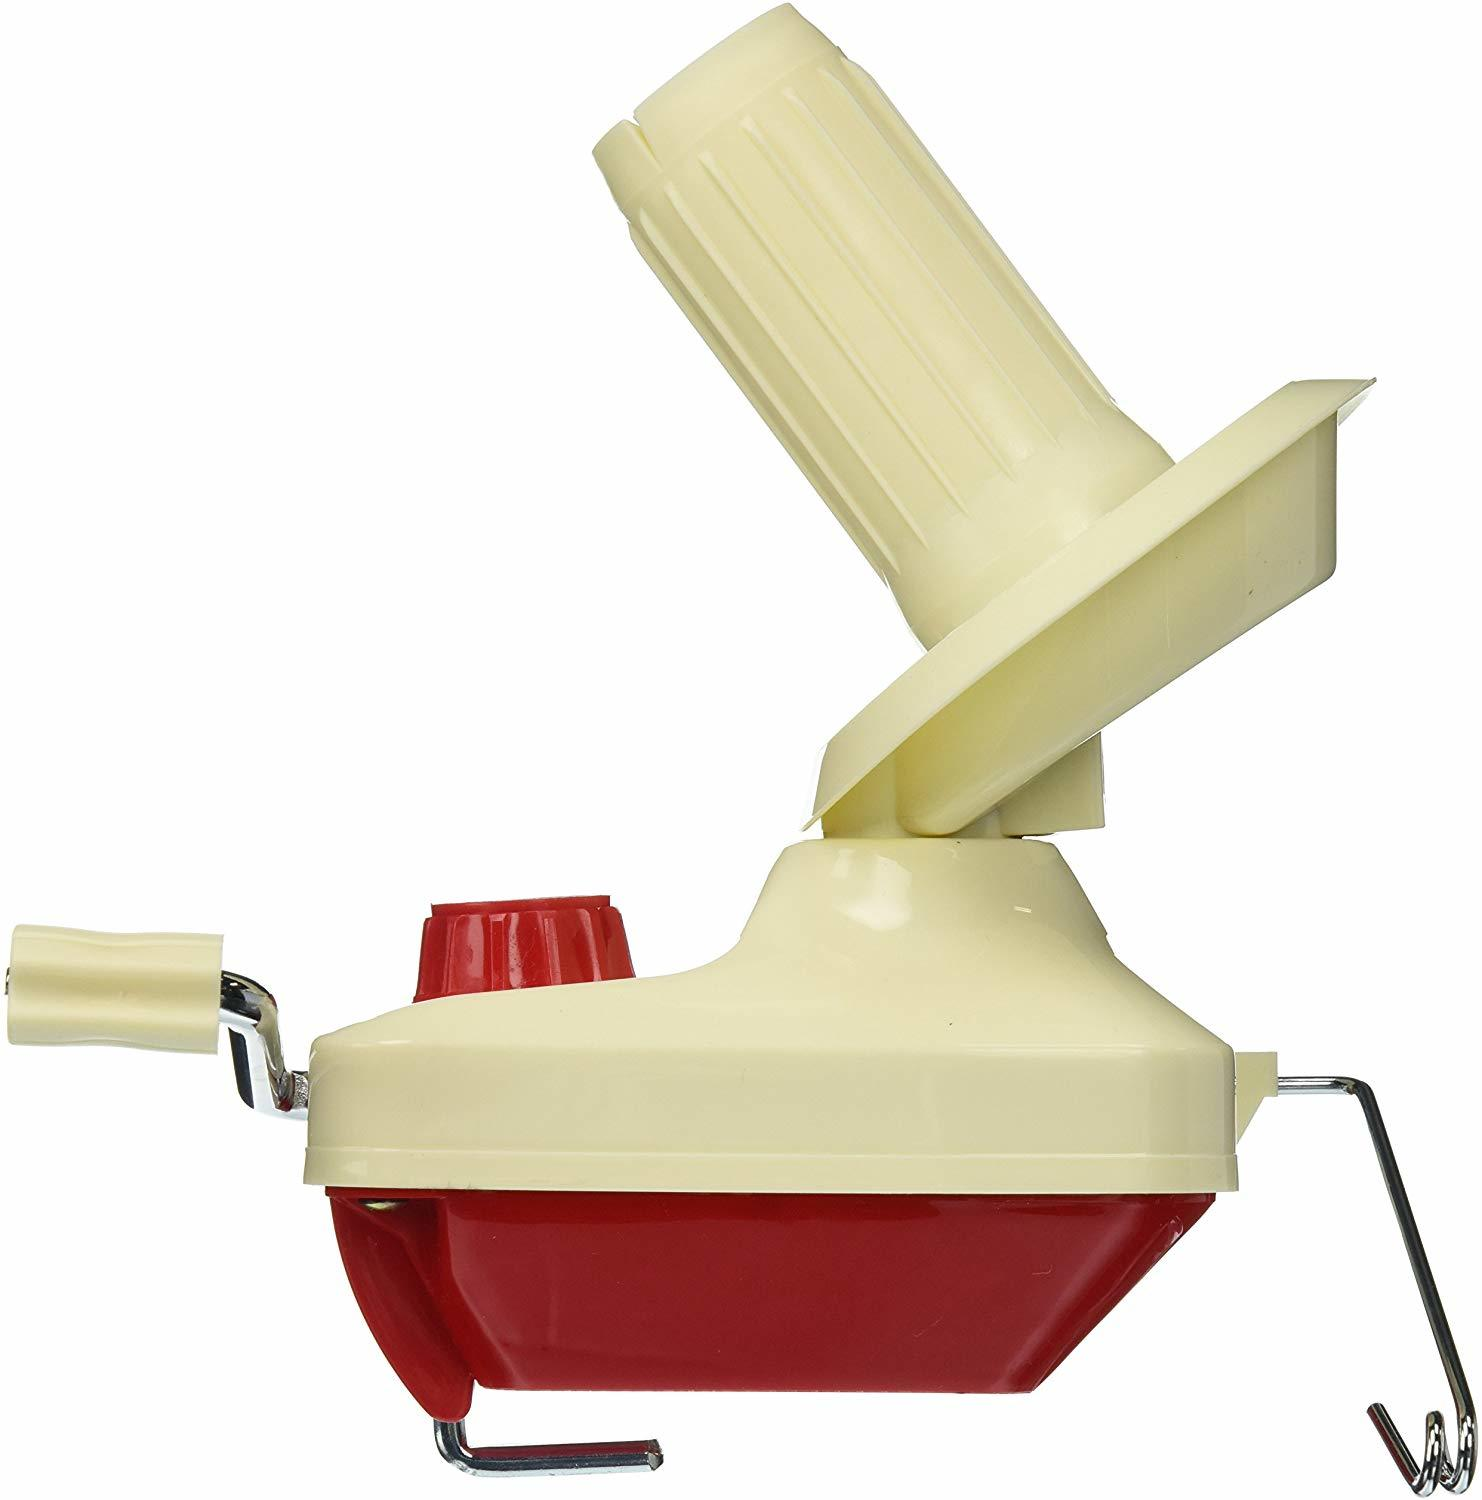 Lacis MO77 Yarn Ball Winder II Weaving Yarn- Runner Up